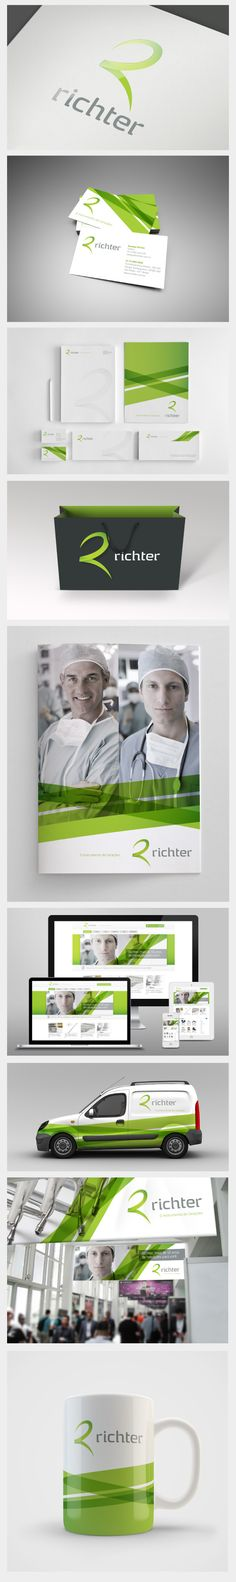 The basic website showed here looks kind of lame, but I love the brand! corporate ID / richter